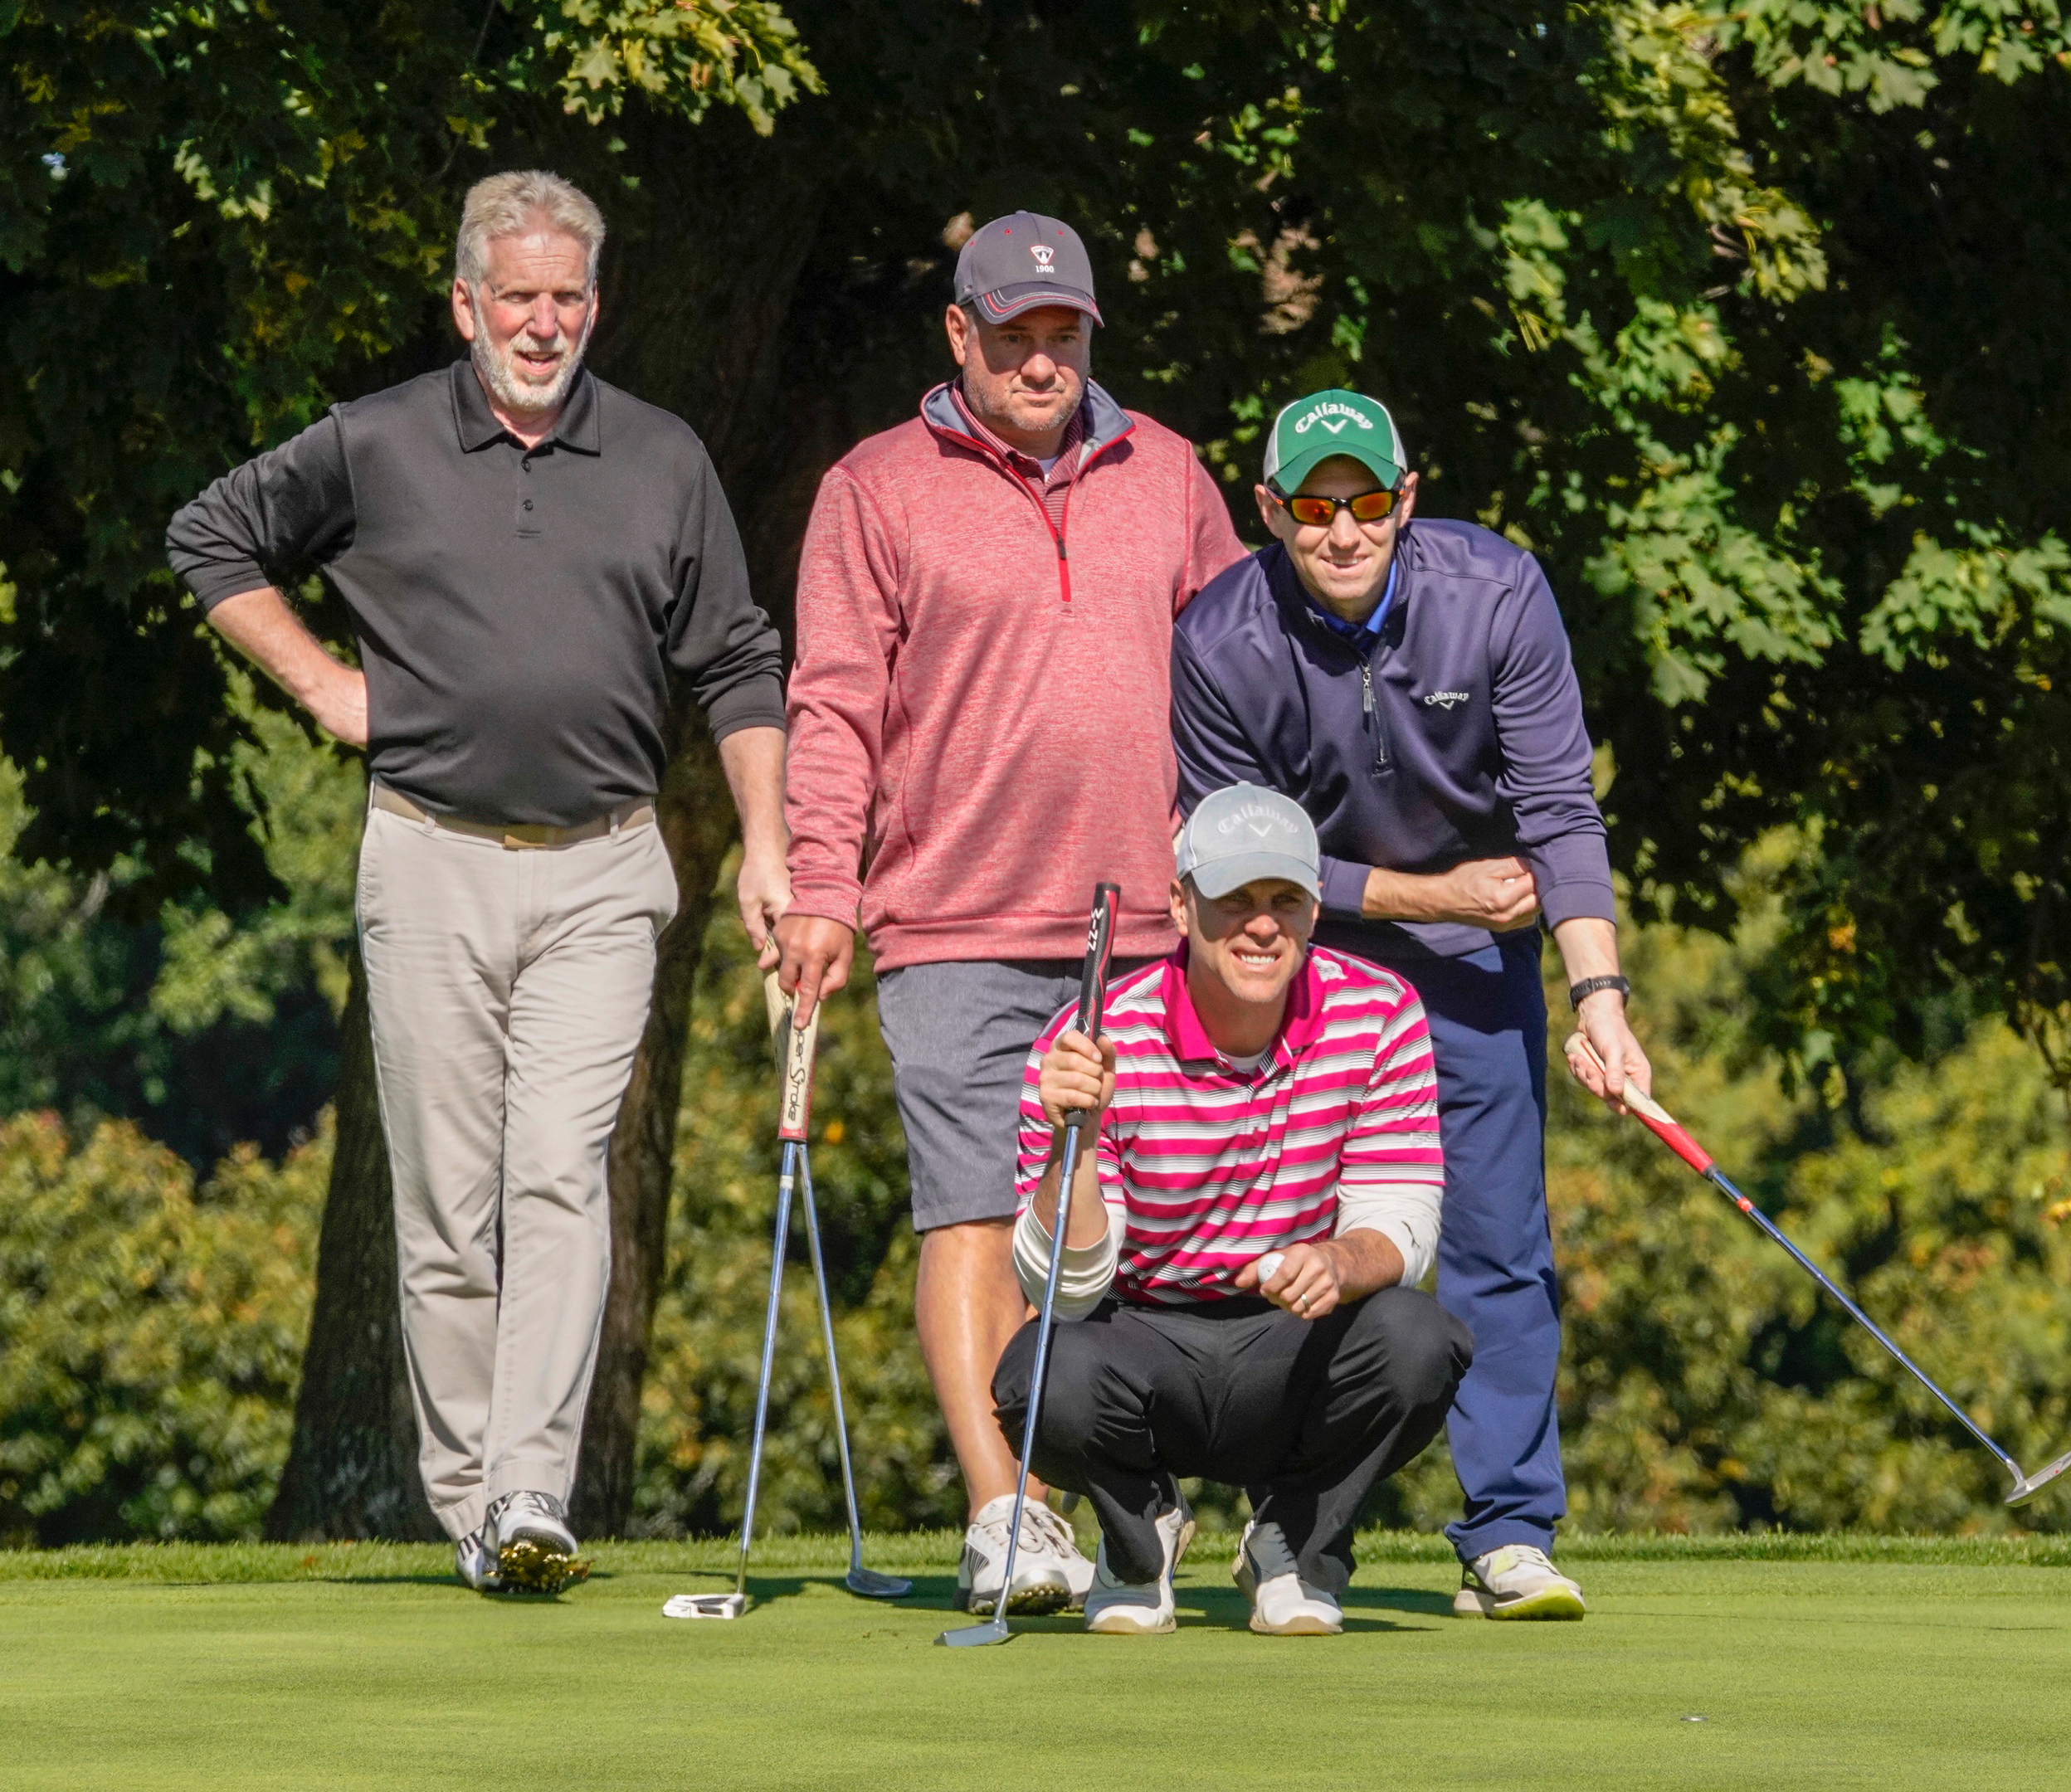 Four people stand on a golf green. One crouches, looking toward a cup.